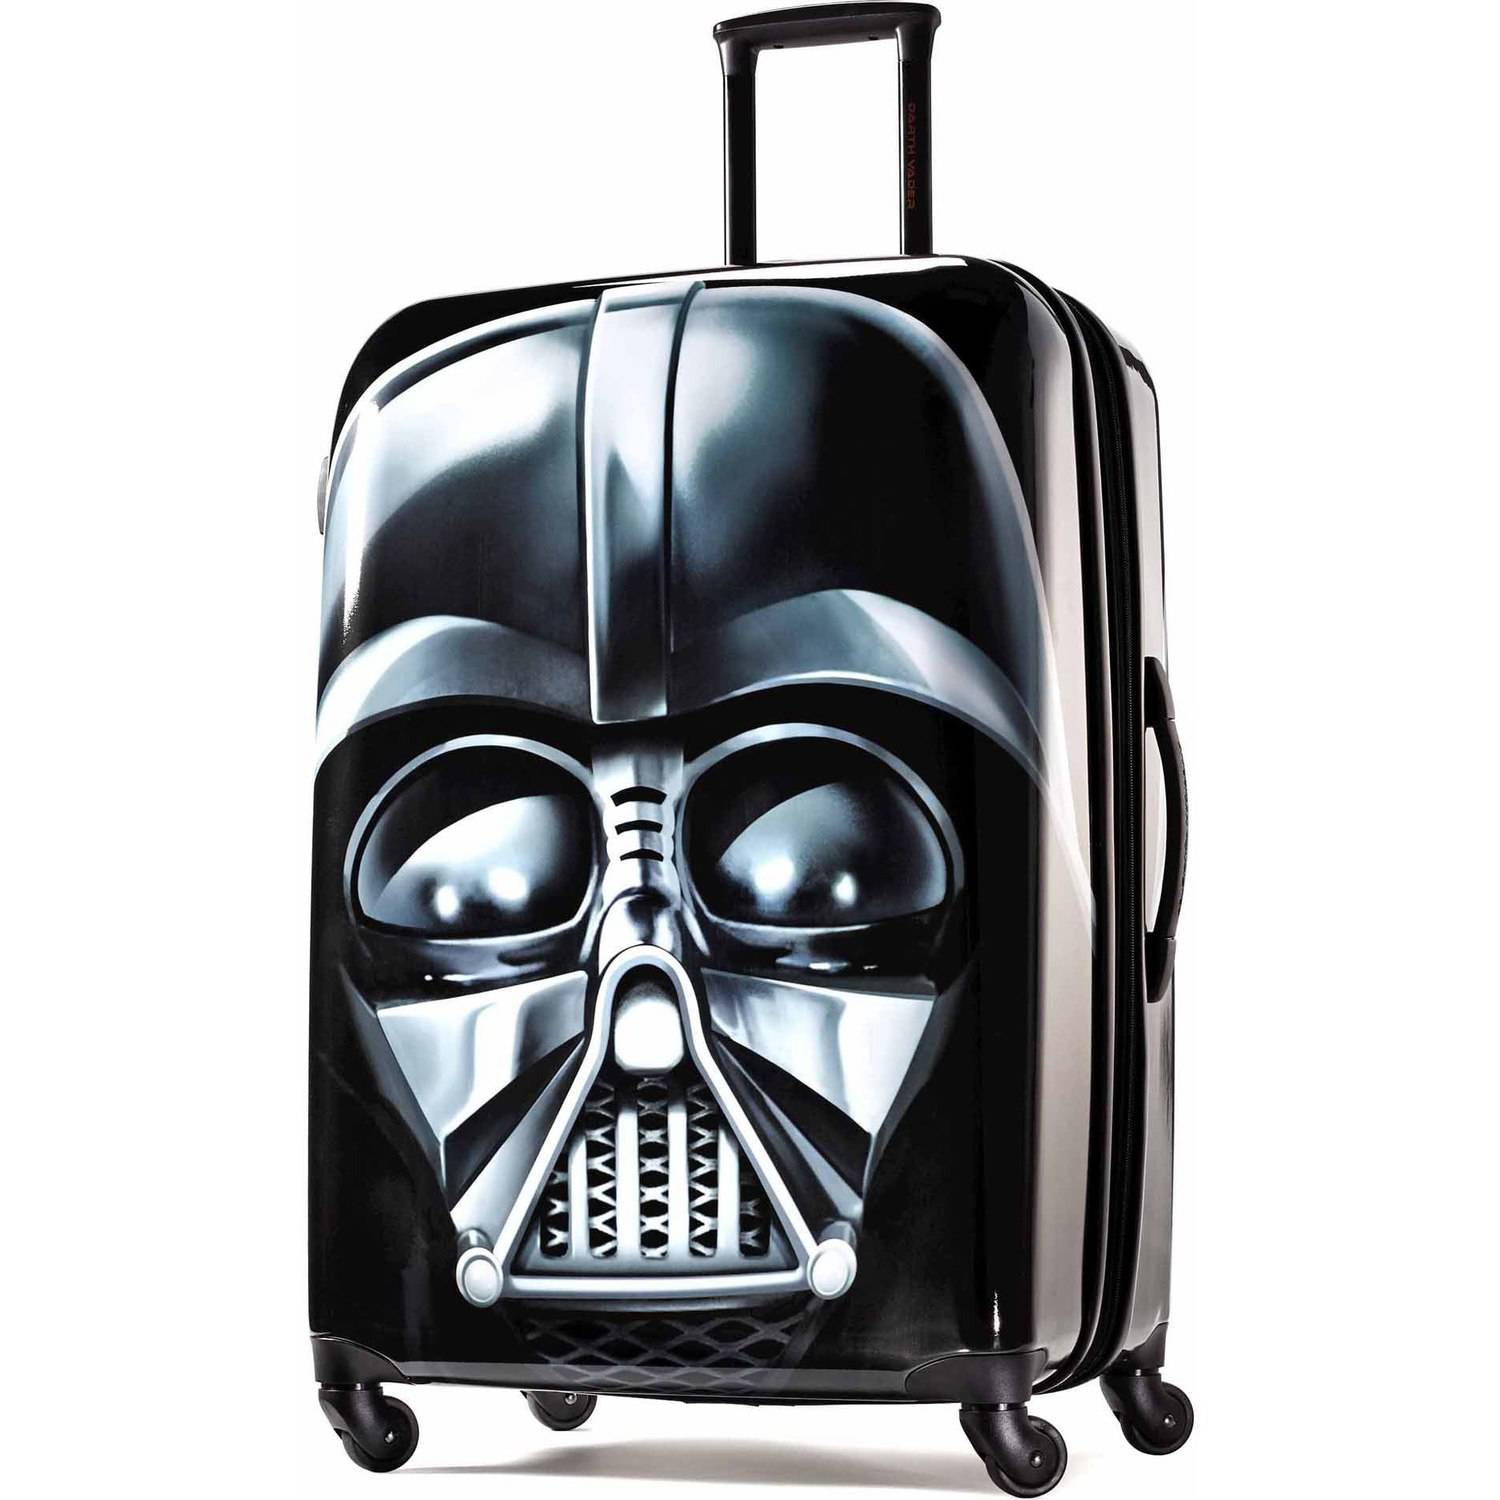 American Tourister Star Wars Darth Vader 28u0022 Hardside Suitcase